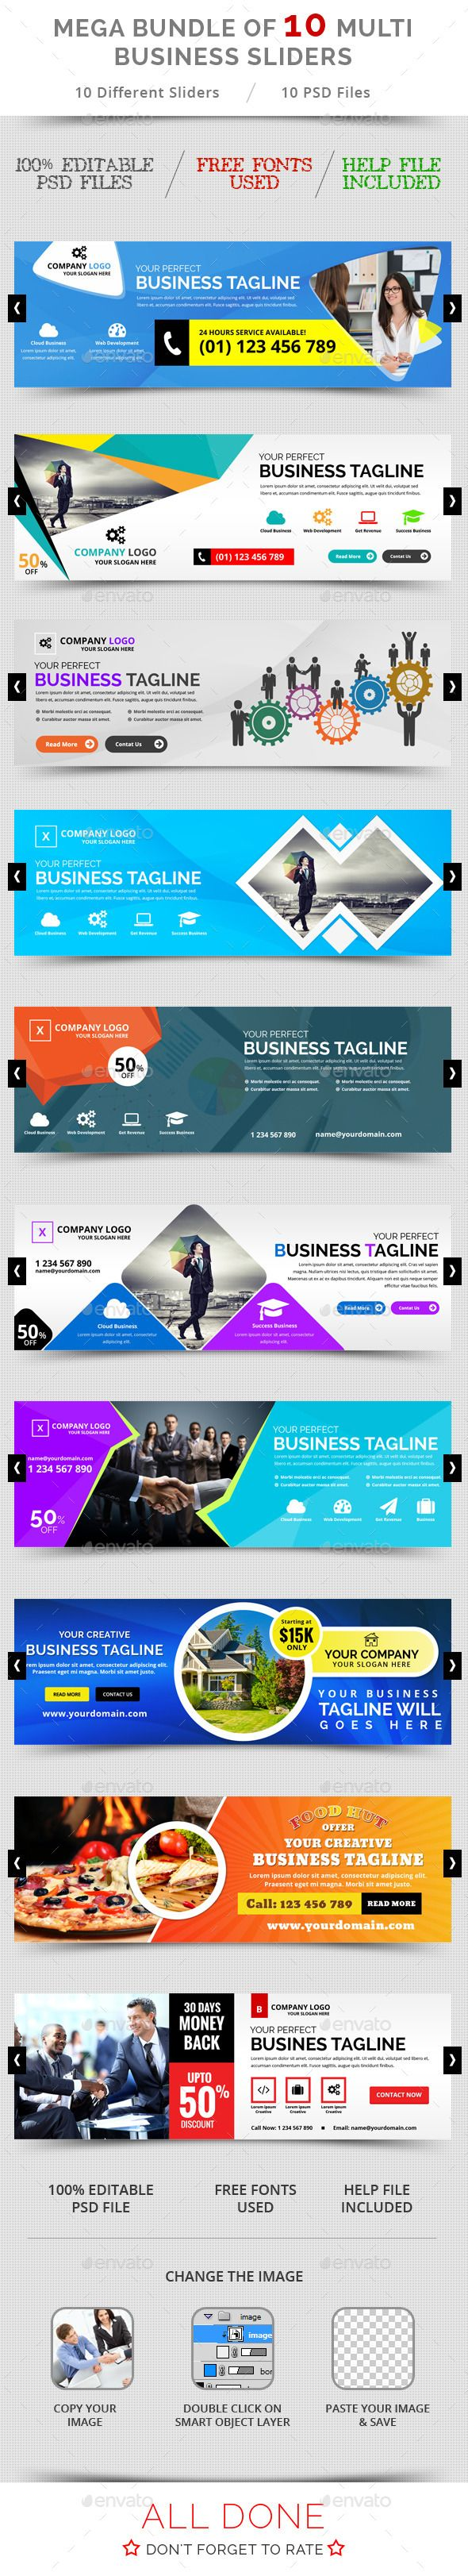 Bundle of 10 Multi Business Sliders Template PSD. Download here…